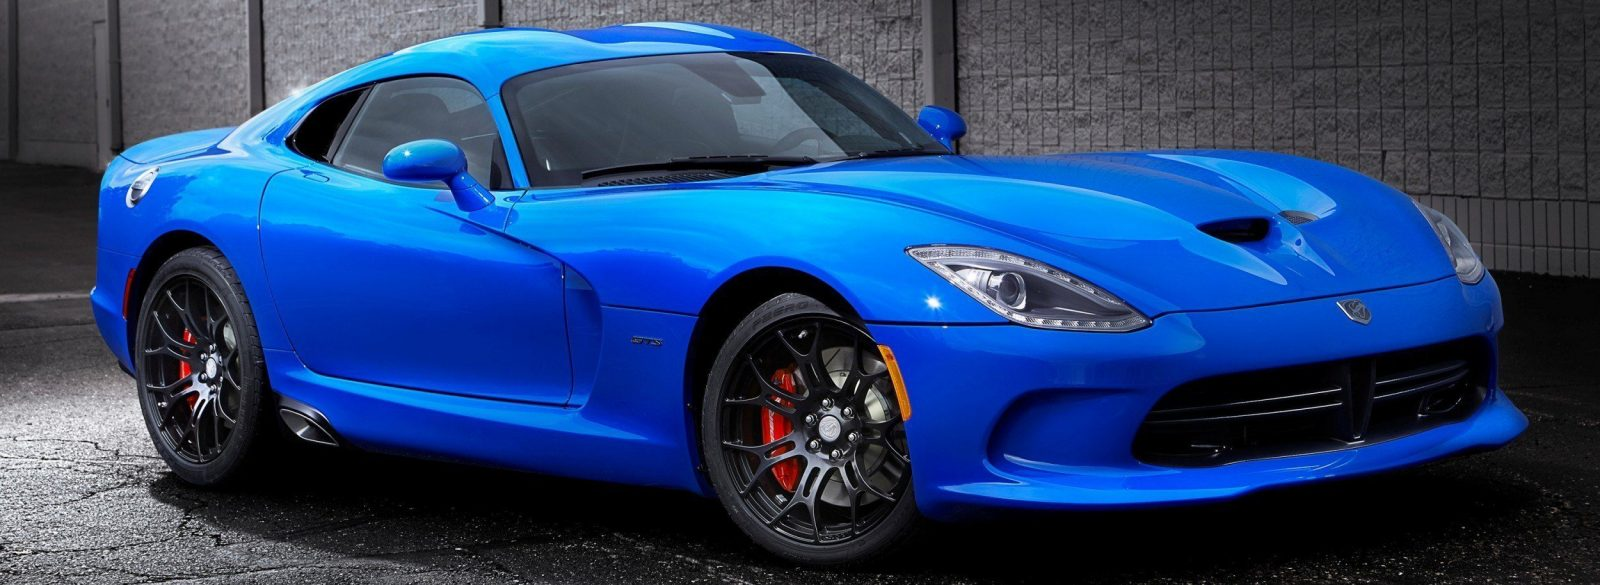 The SRT® brand kicked-off ?The SRT Viper Color Contest,? an online contest that enabled Viper enthusiasts to name the new blue exterior paint color for the 2014 SRT Viper